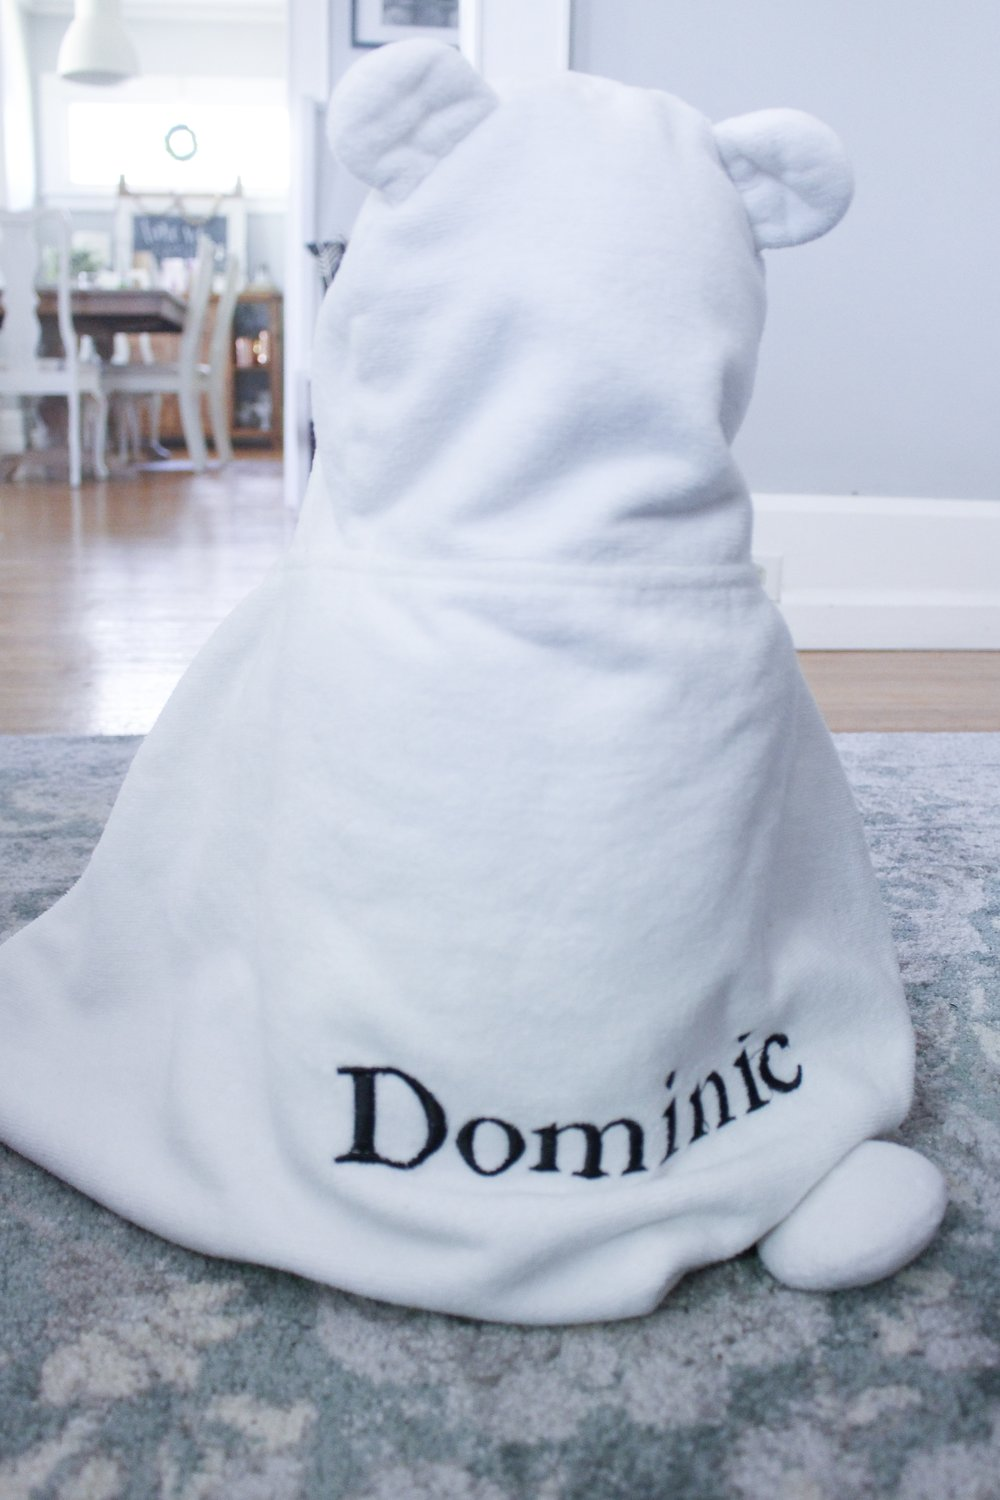 Dominic in a towel